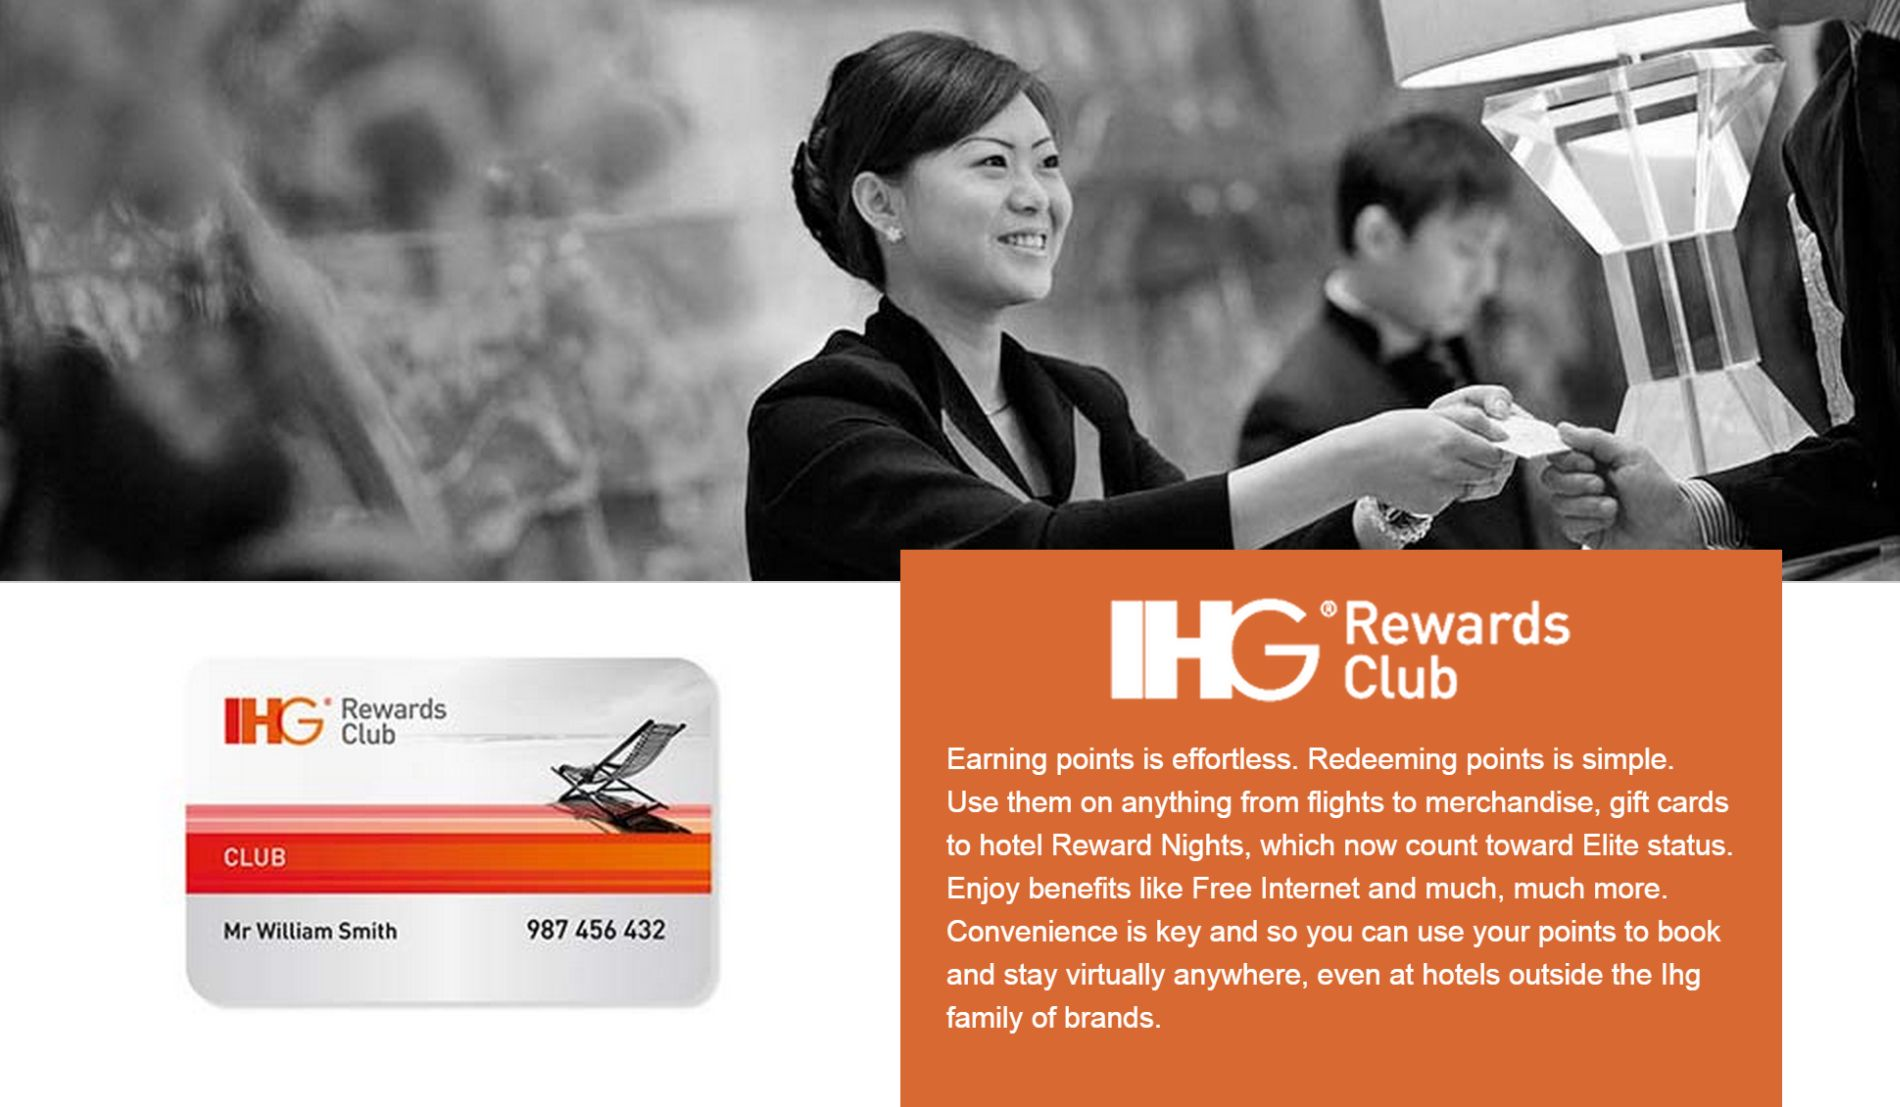 Changes are coming to IHG Rewards Club – New Elite Level